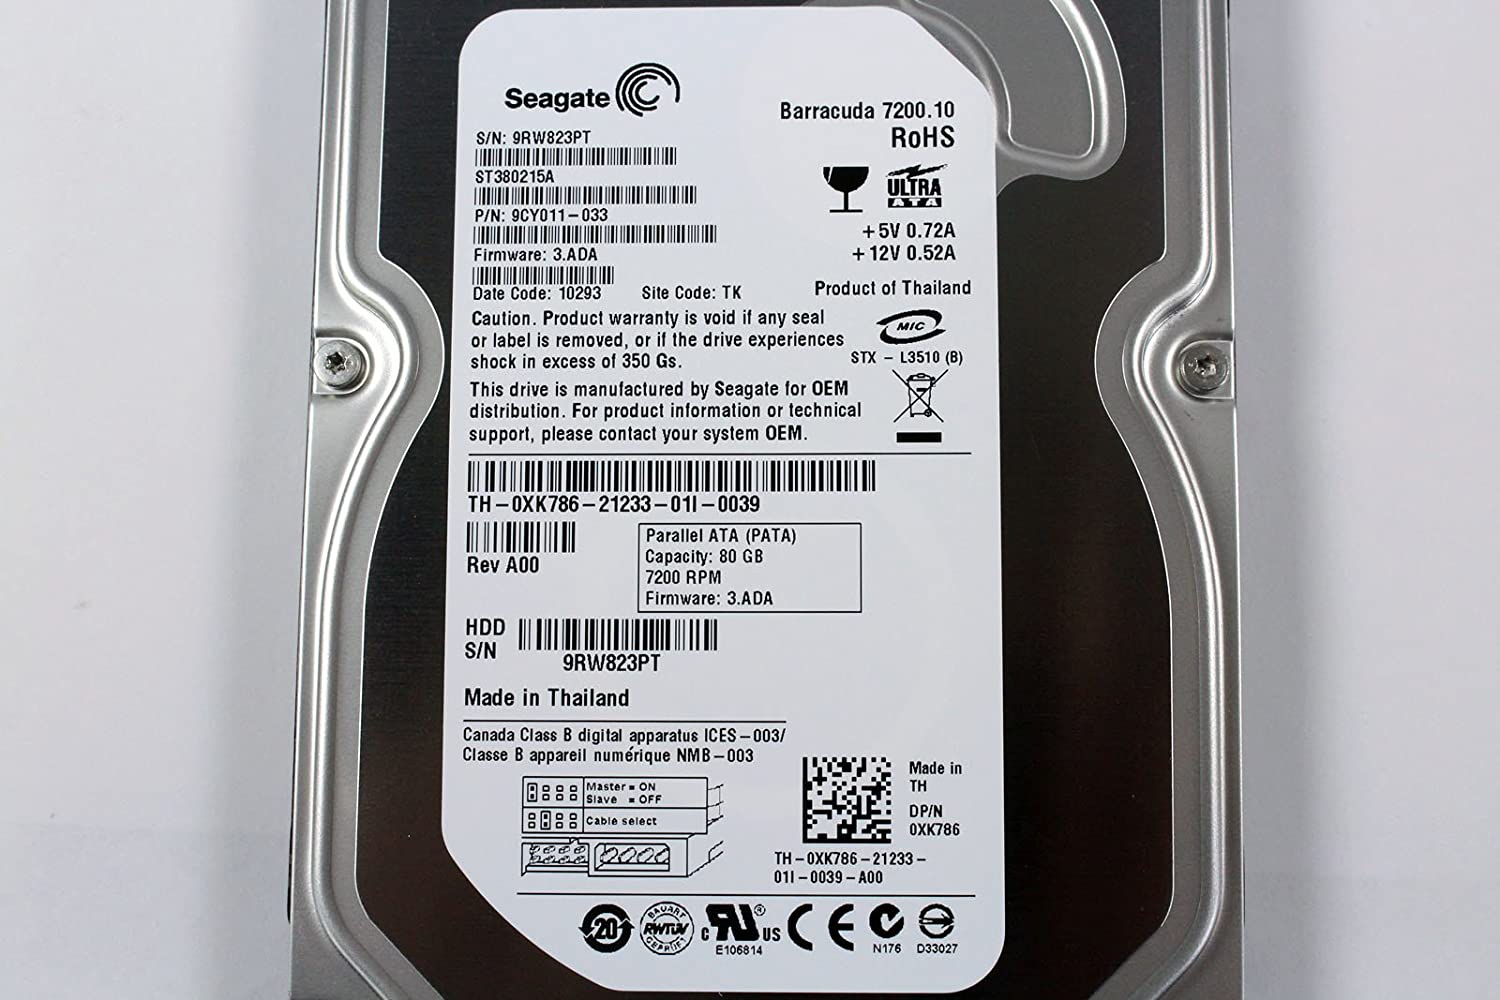 Seagate St380215a Desktop 35 80gb Ide 7200rpm Hardisk Hdd 25 Computers Accessories